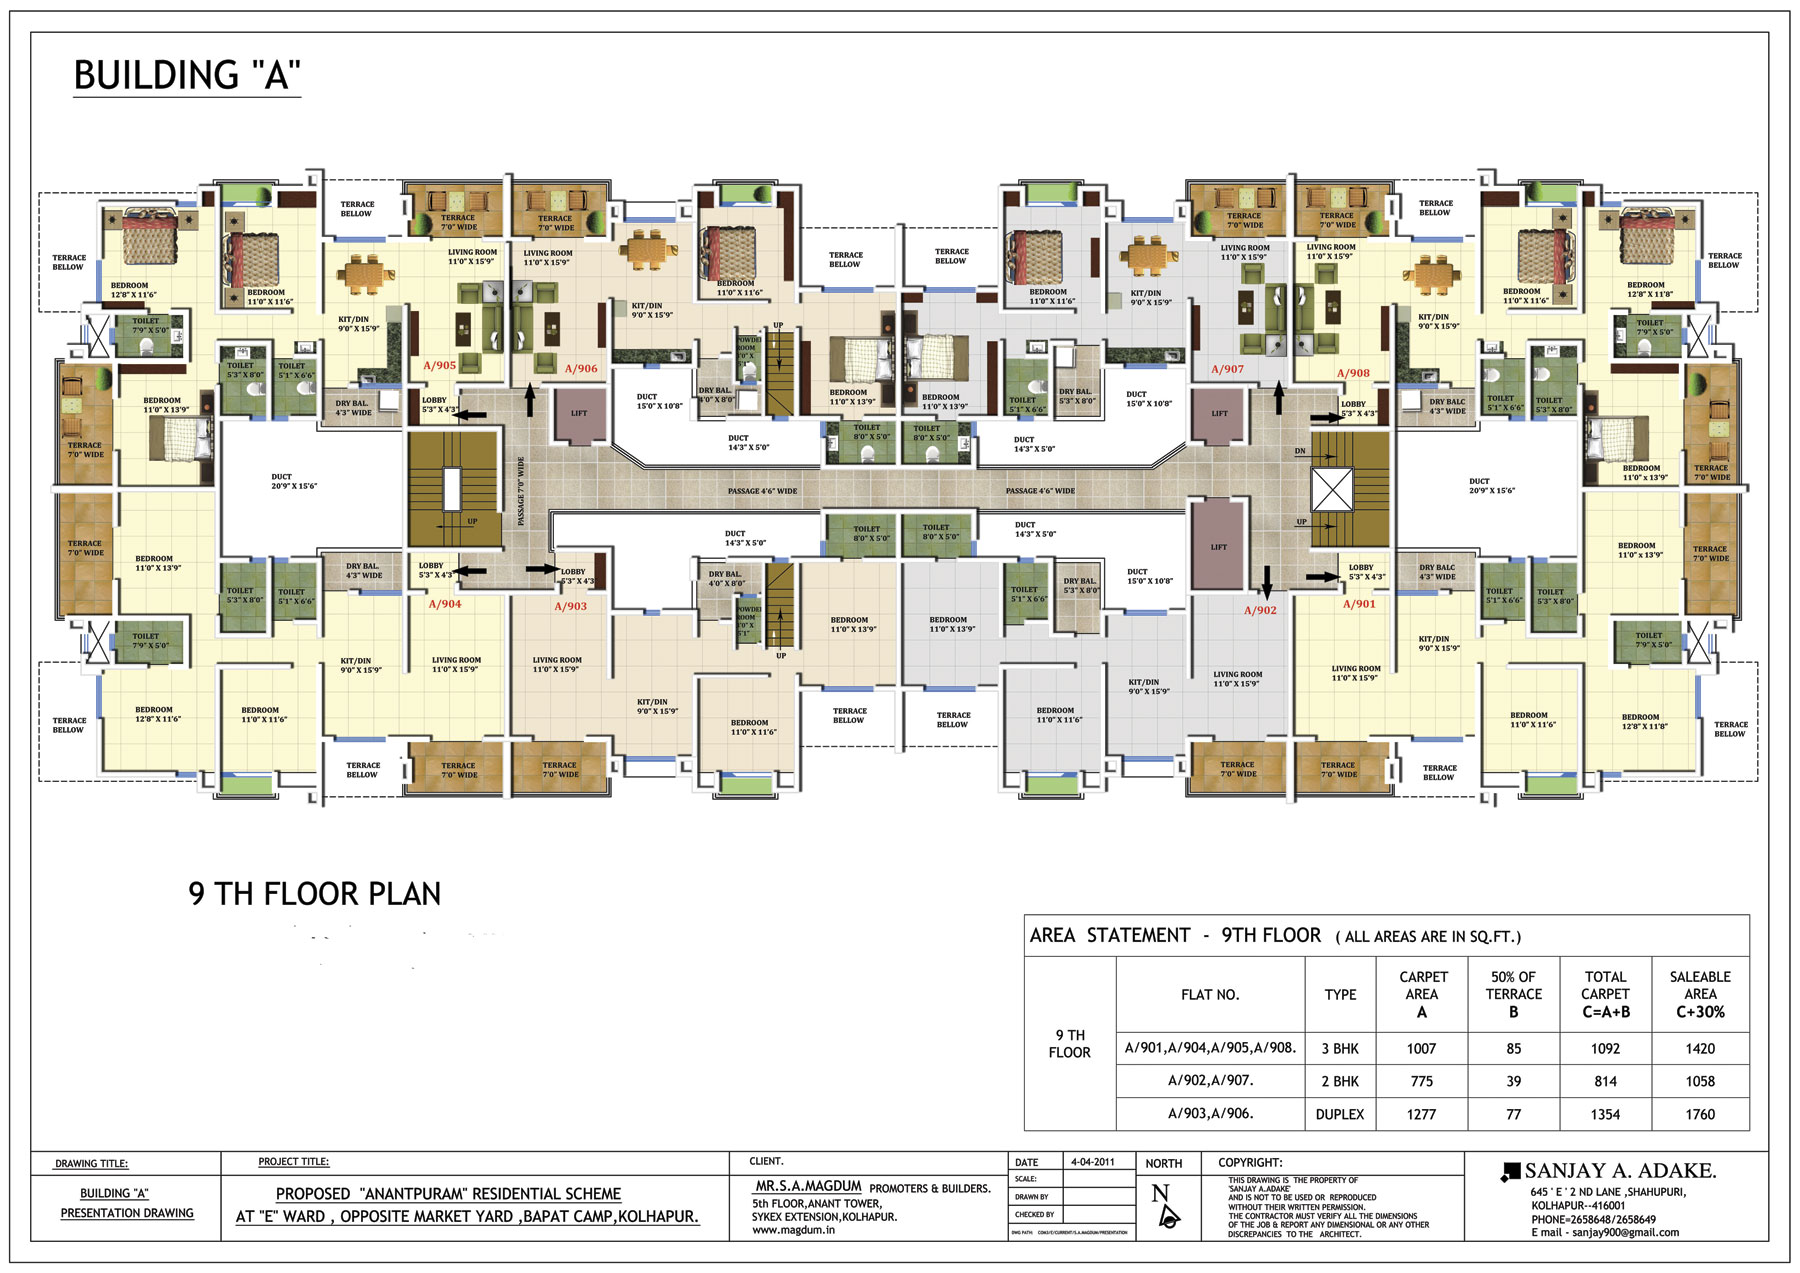 2 3 4 bhk flats pent house in bapat camp kolhapur for Building plans images